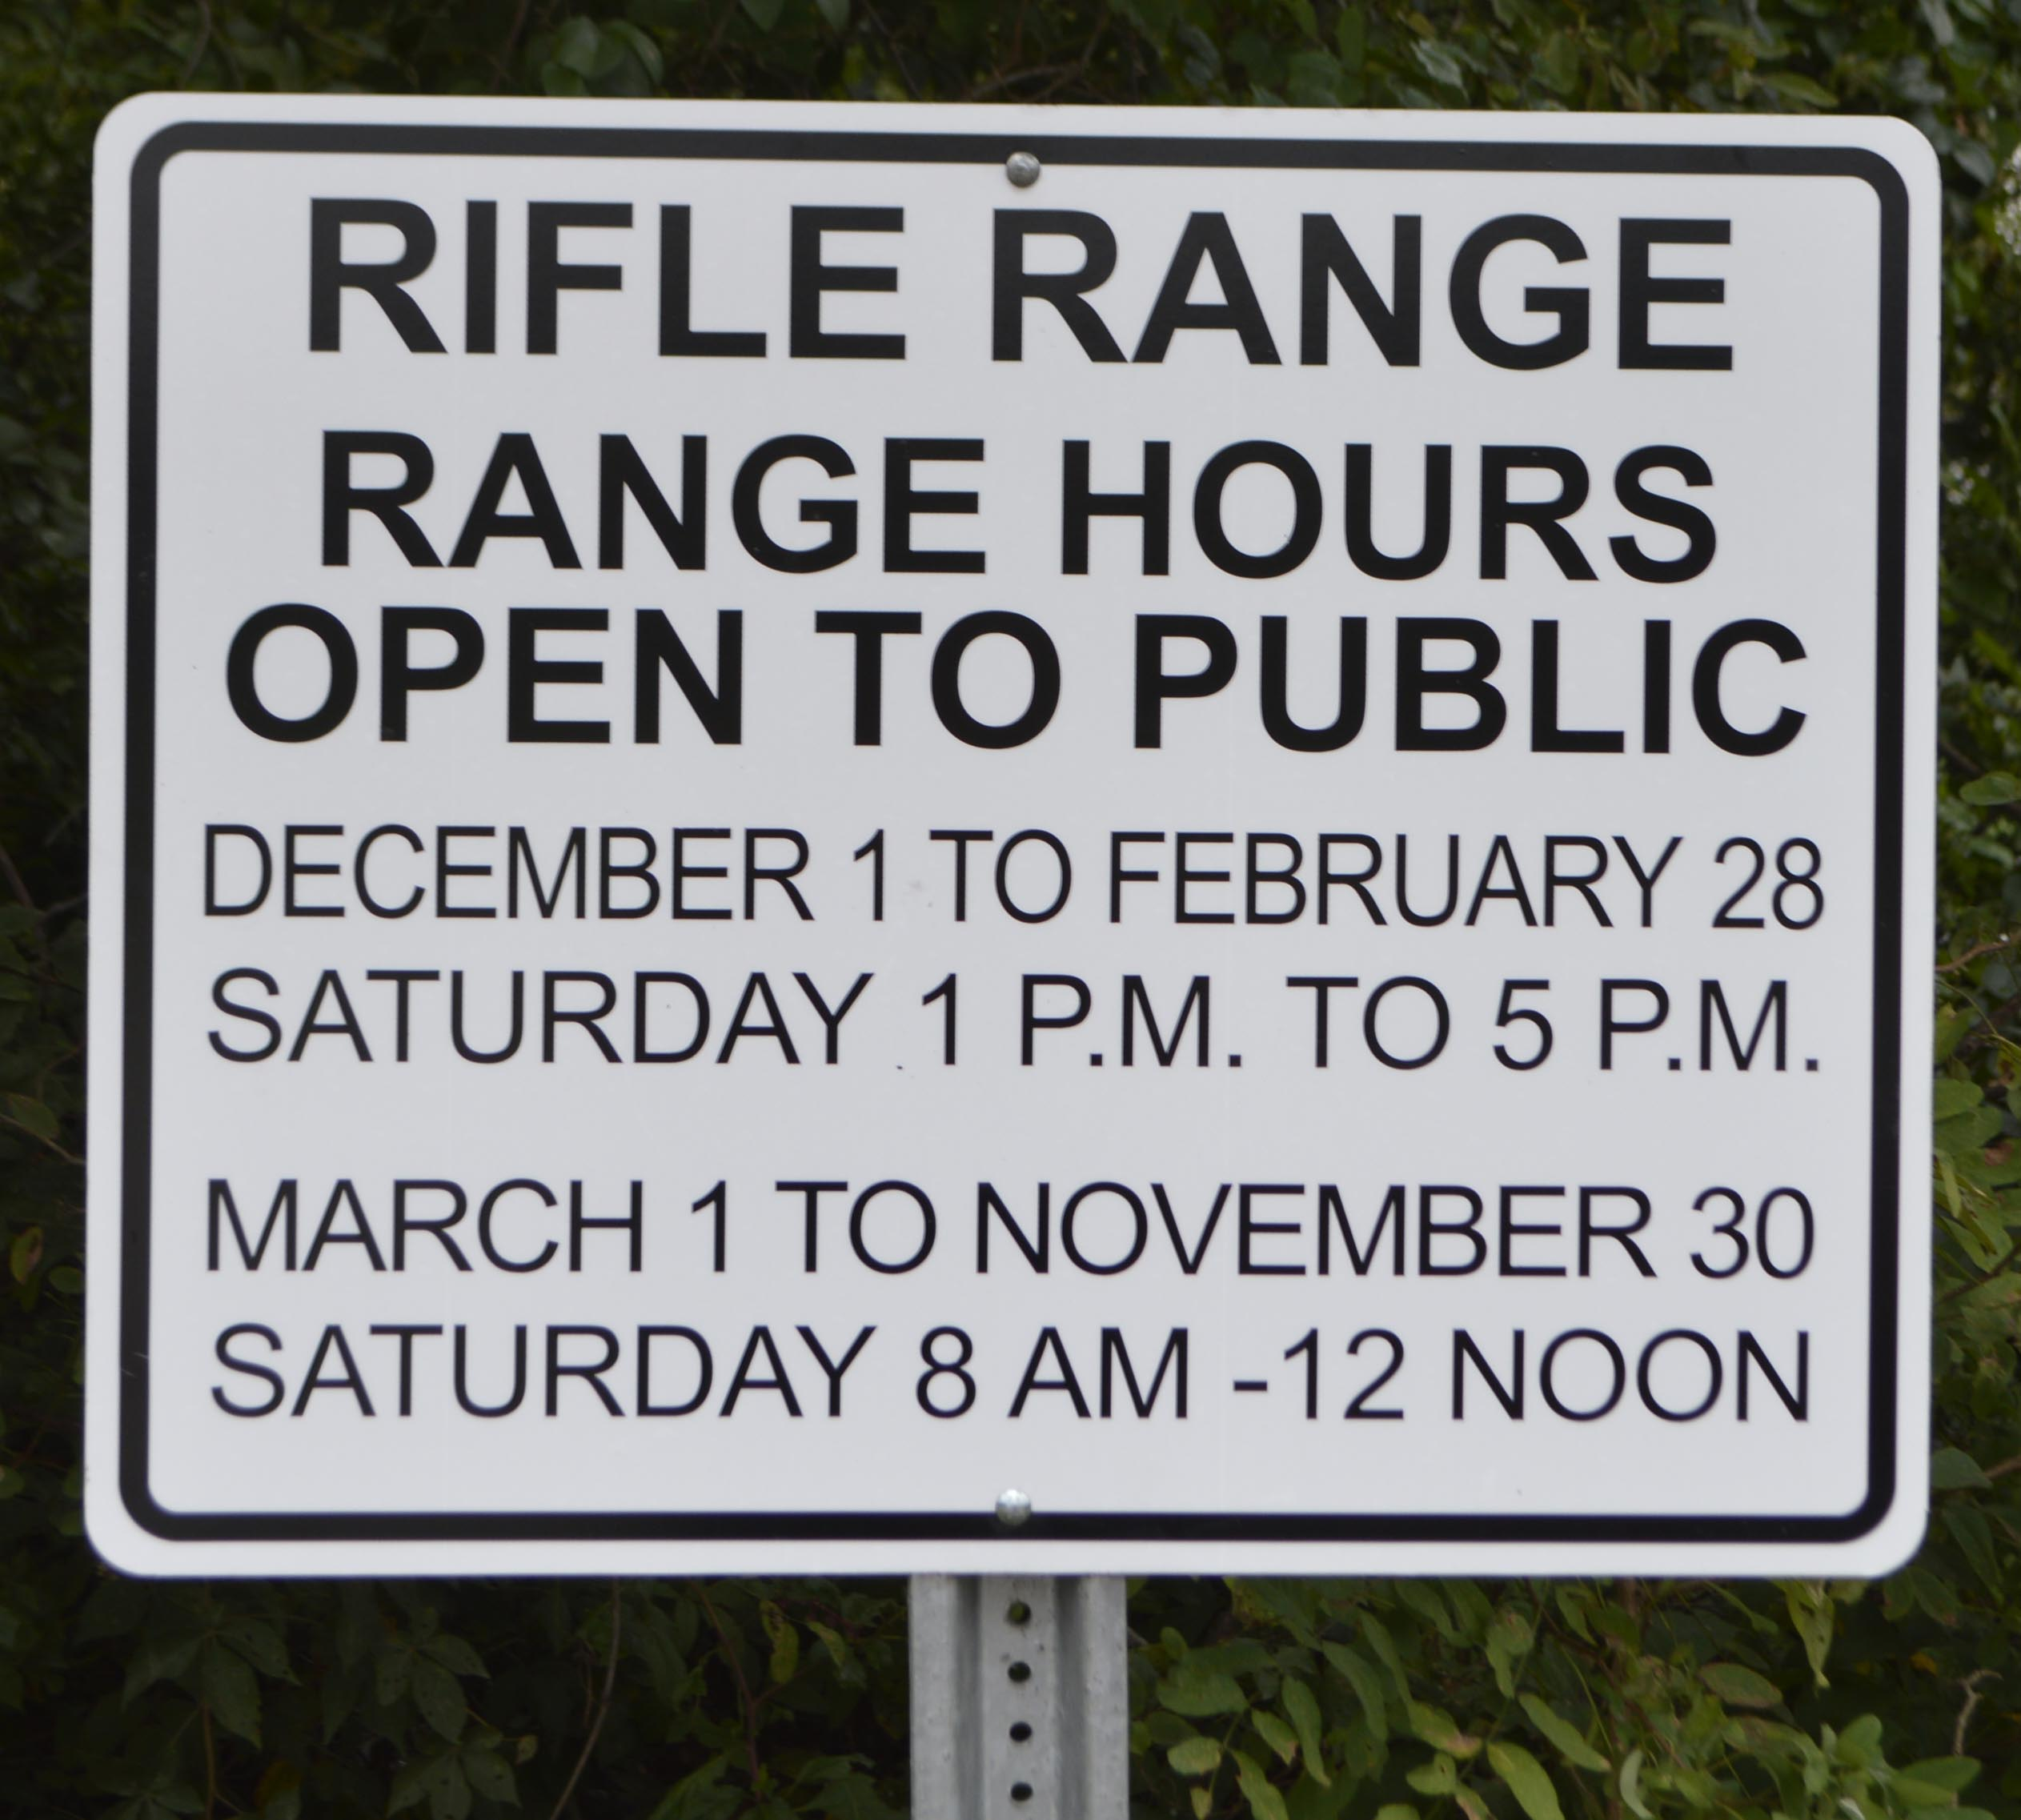 Rifle Range Hours